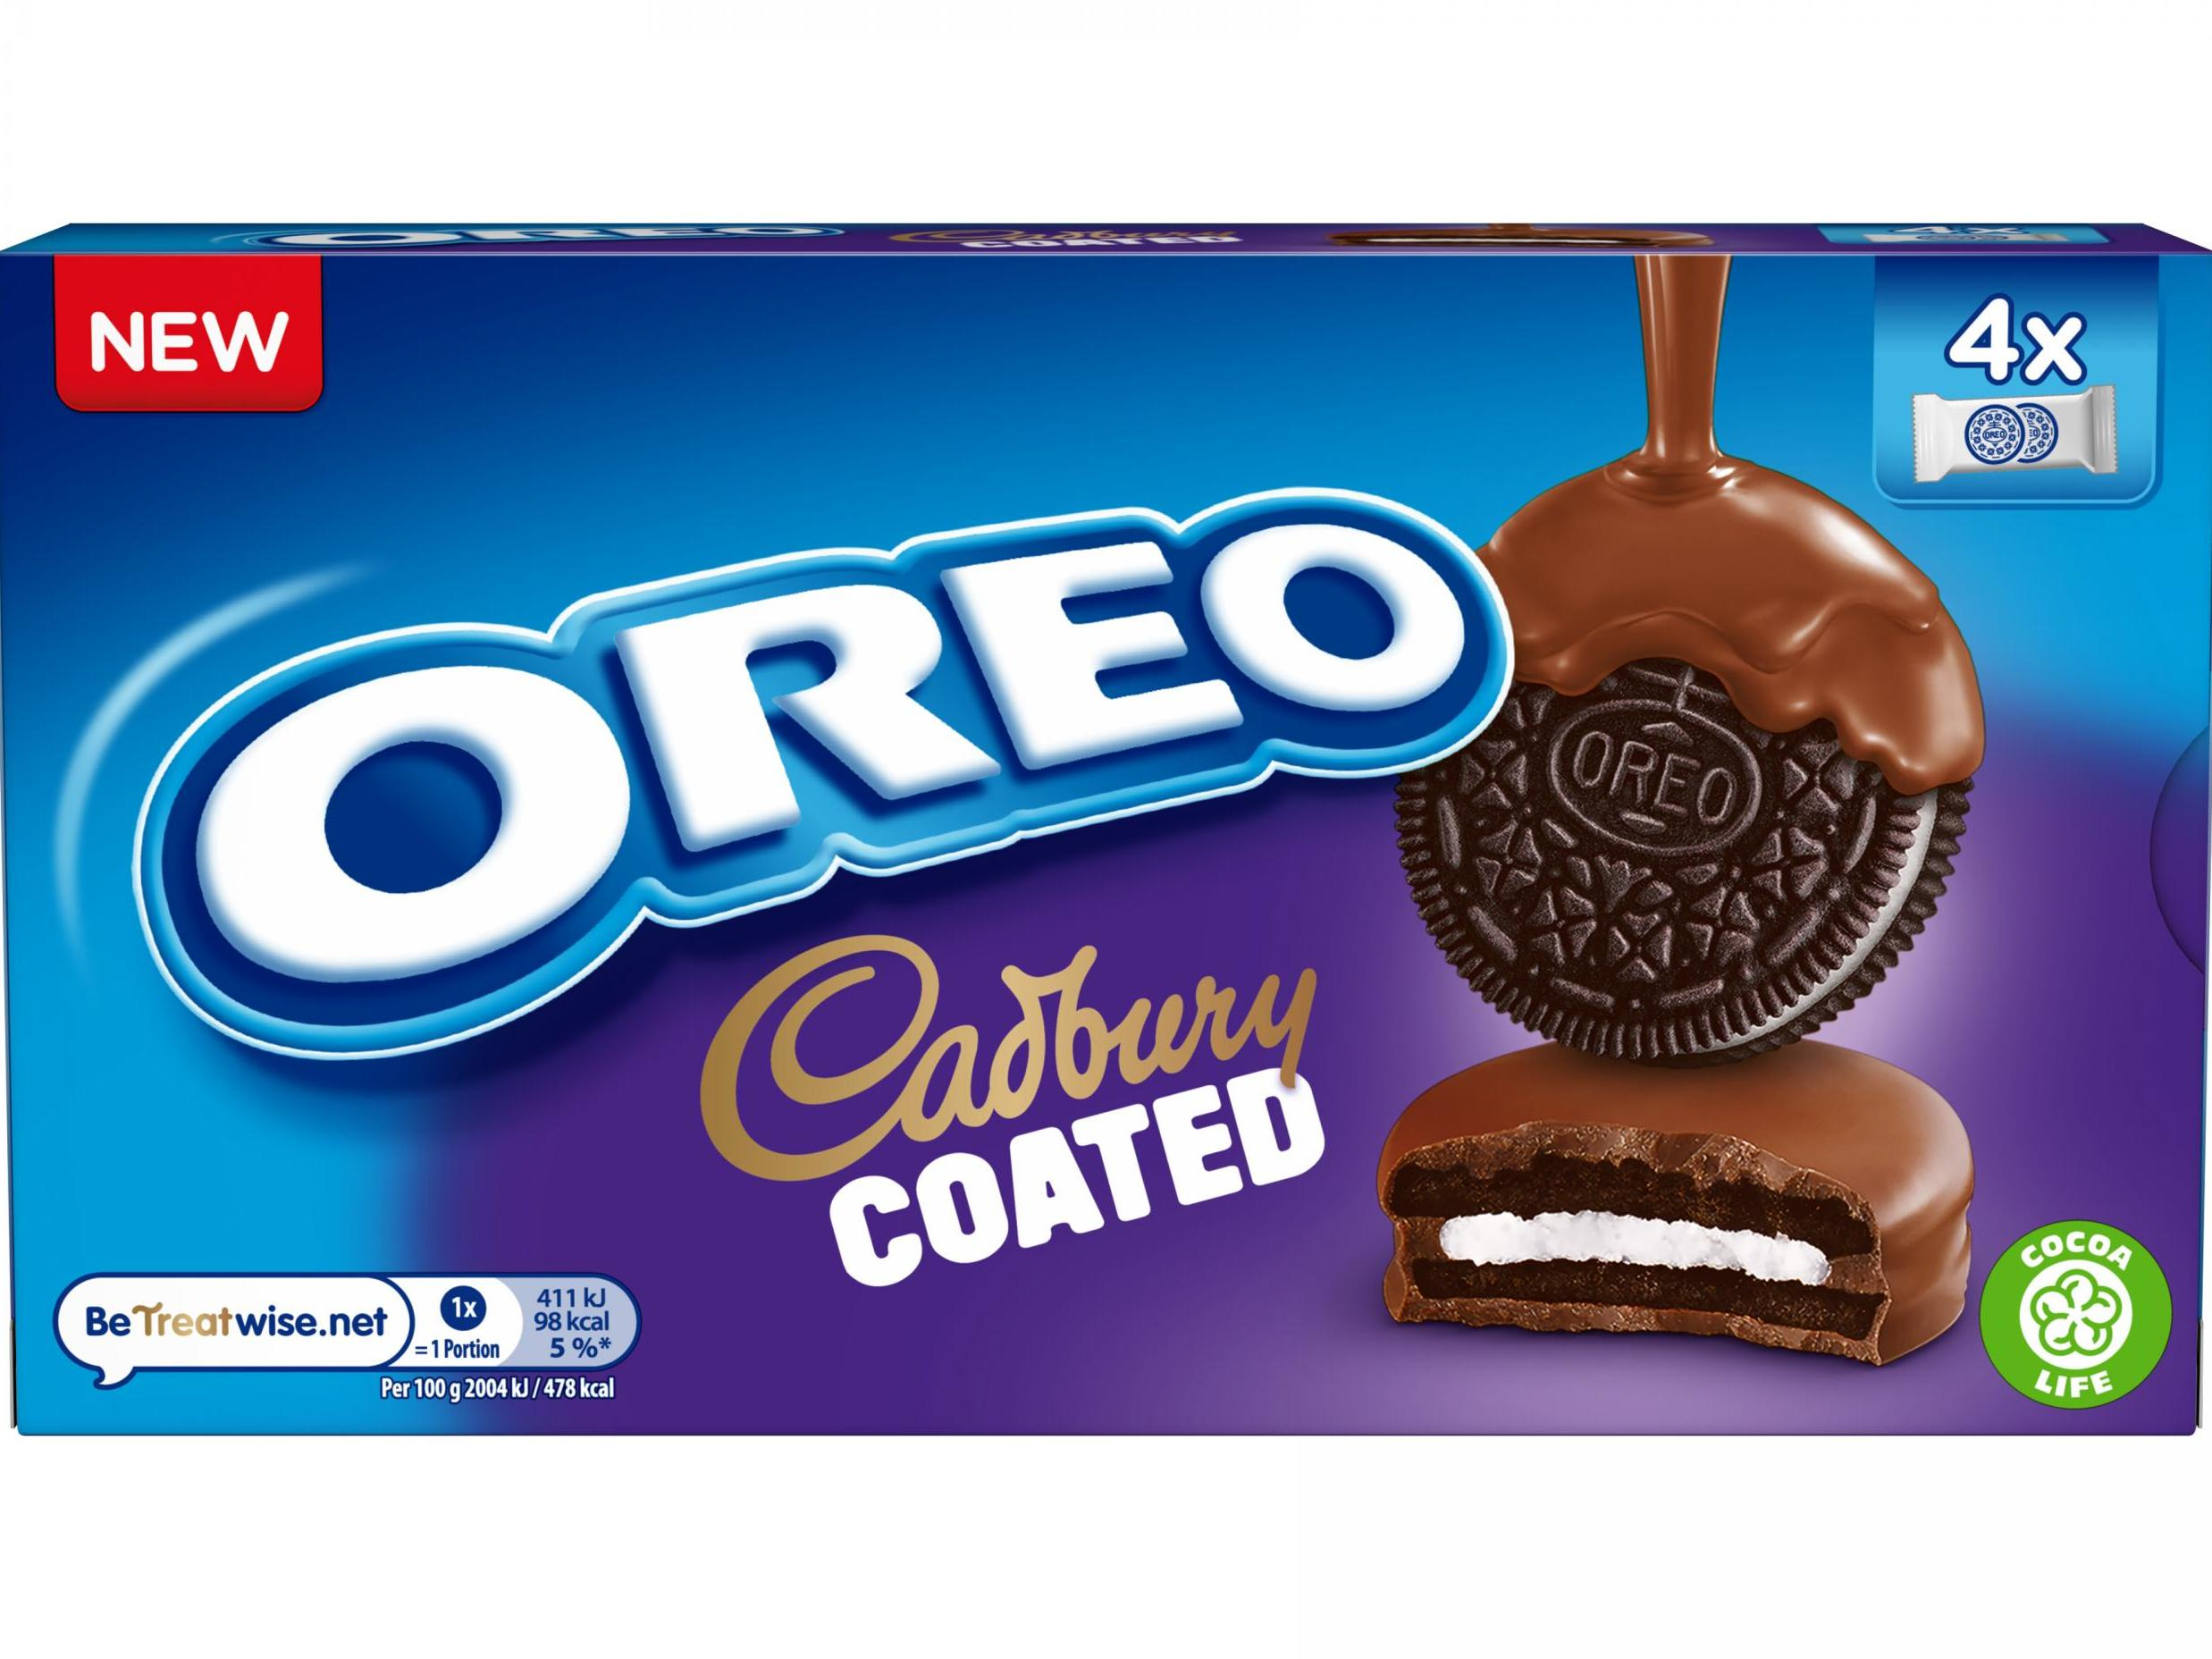 Oreo launches cookie coated in Cadbury chocolate 1